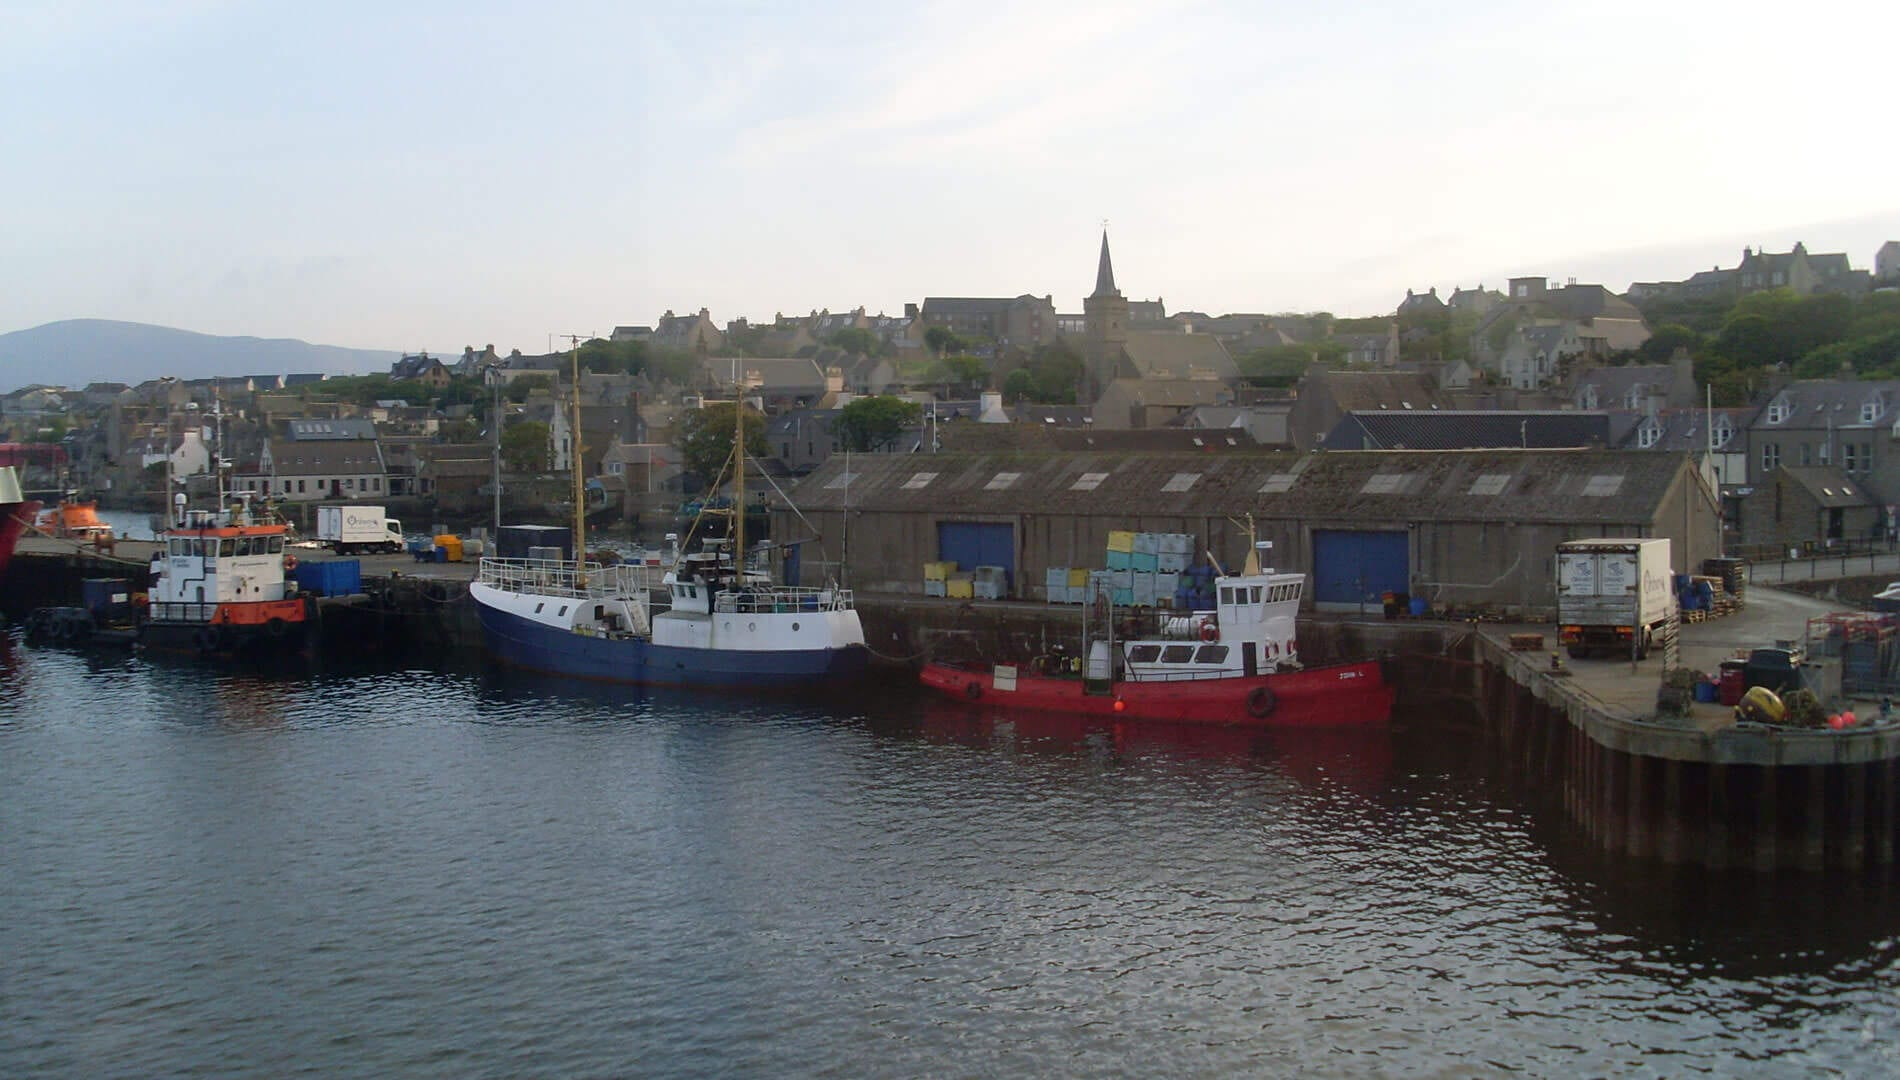 Stromness: Orcadian hospitality